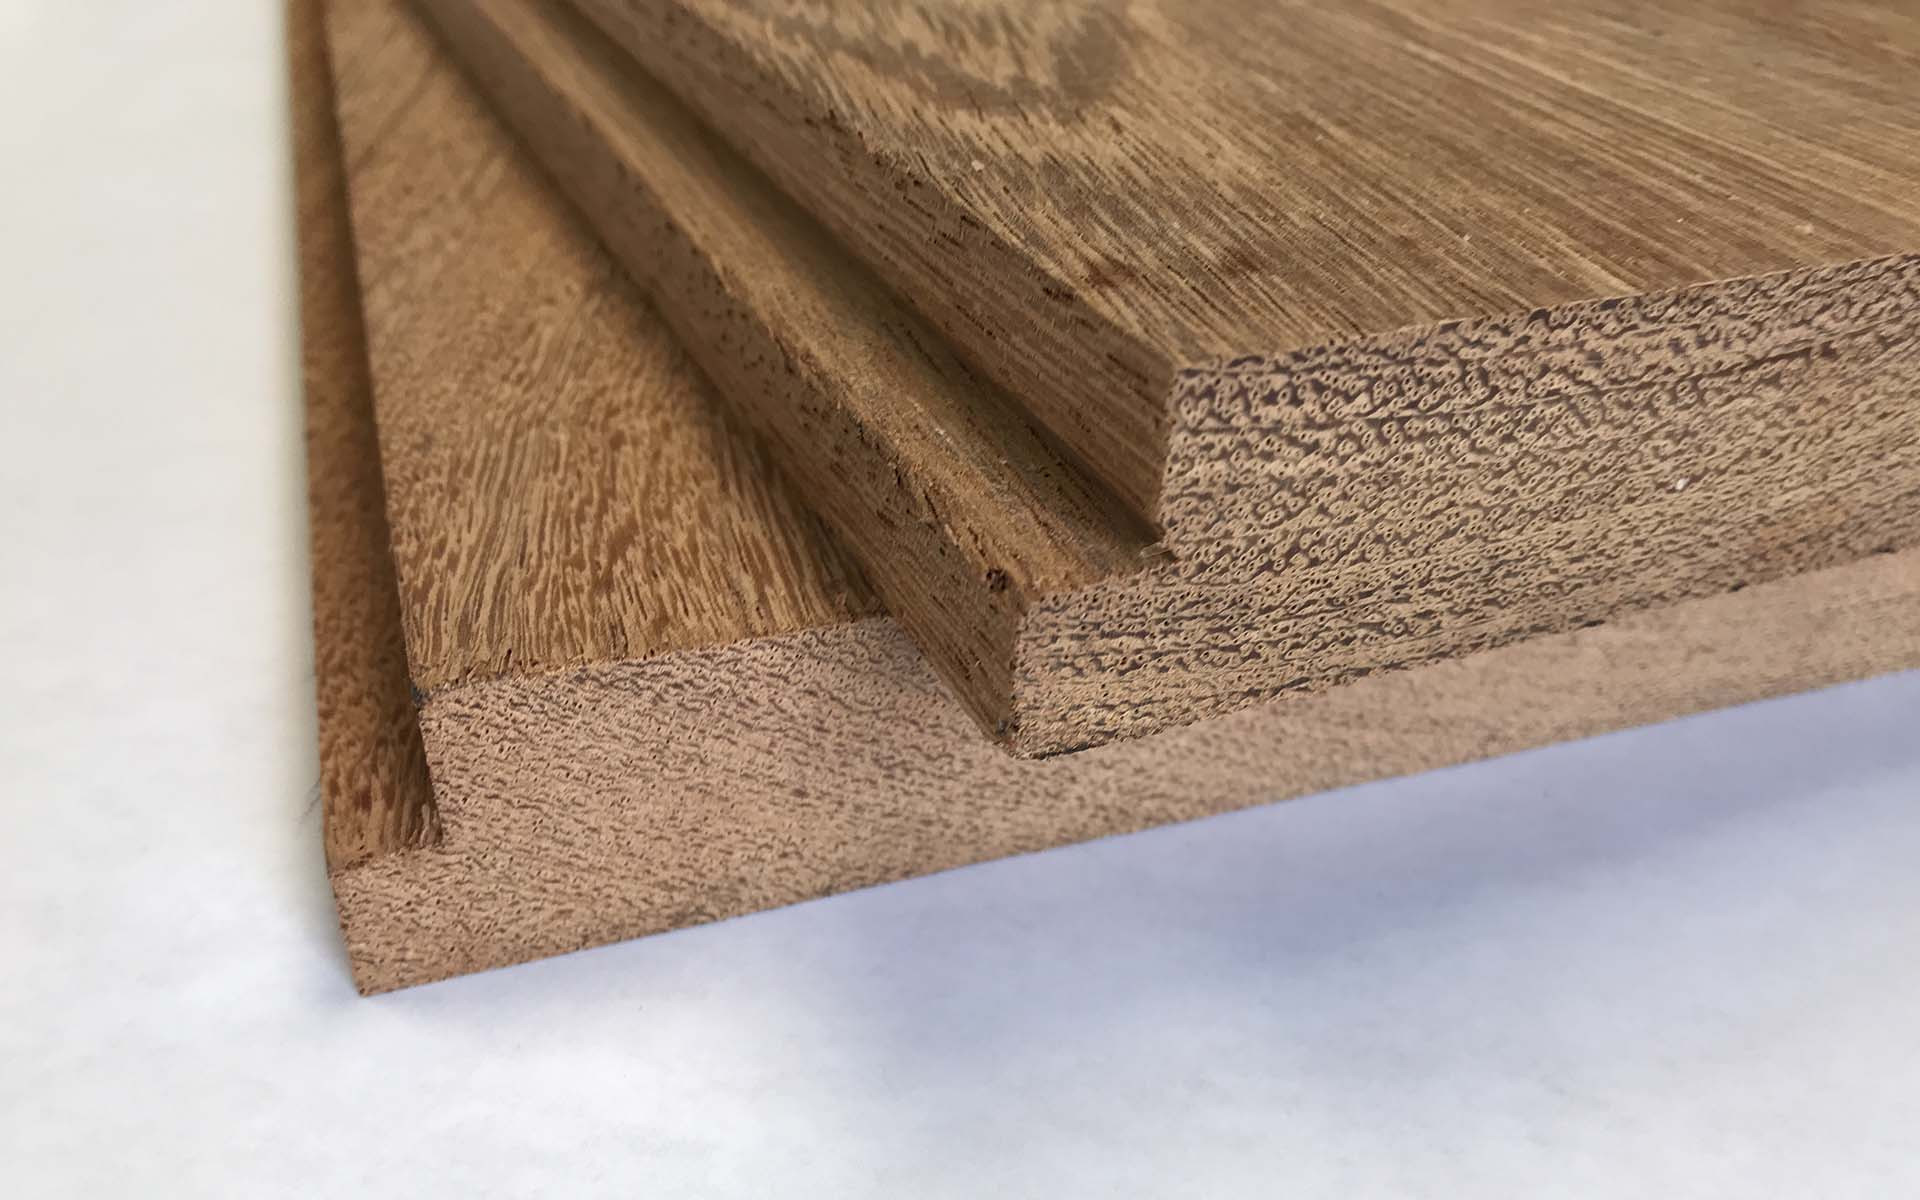 hardwood flooring installation chattanooga of buy trailer decking apitong shiplap rough boards truck flooring intended for 3 angelim pedra shiplap close up